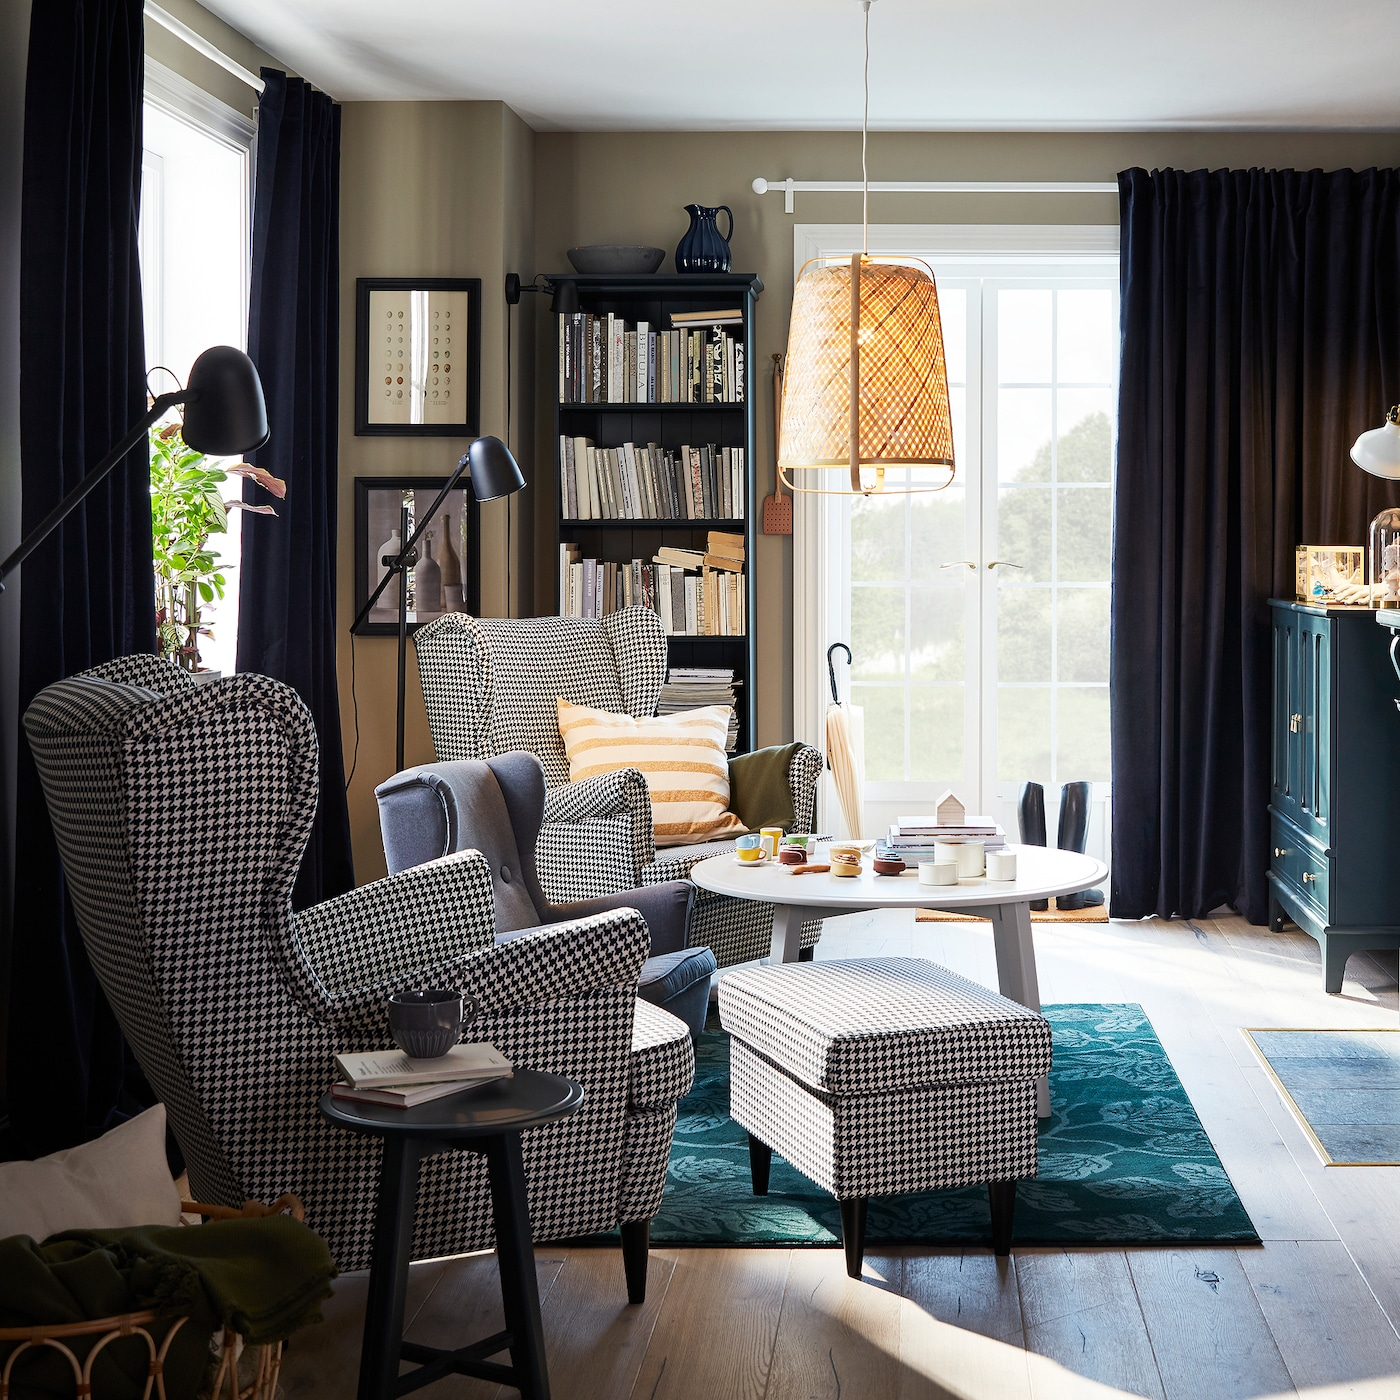 Link to 'A modern take on beloved classics' room - image of a living room with two houndstooth-patterned STRANDMON wing chairs